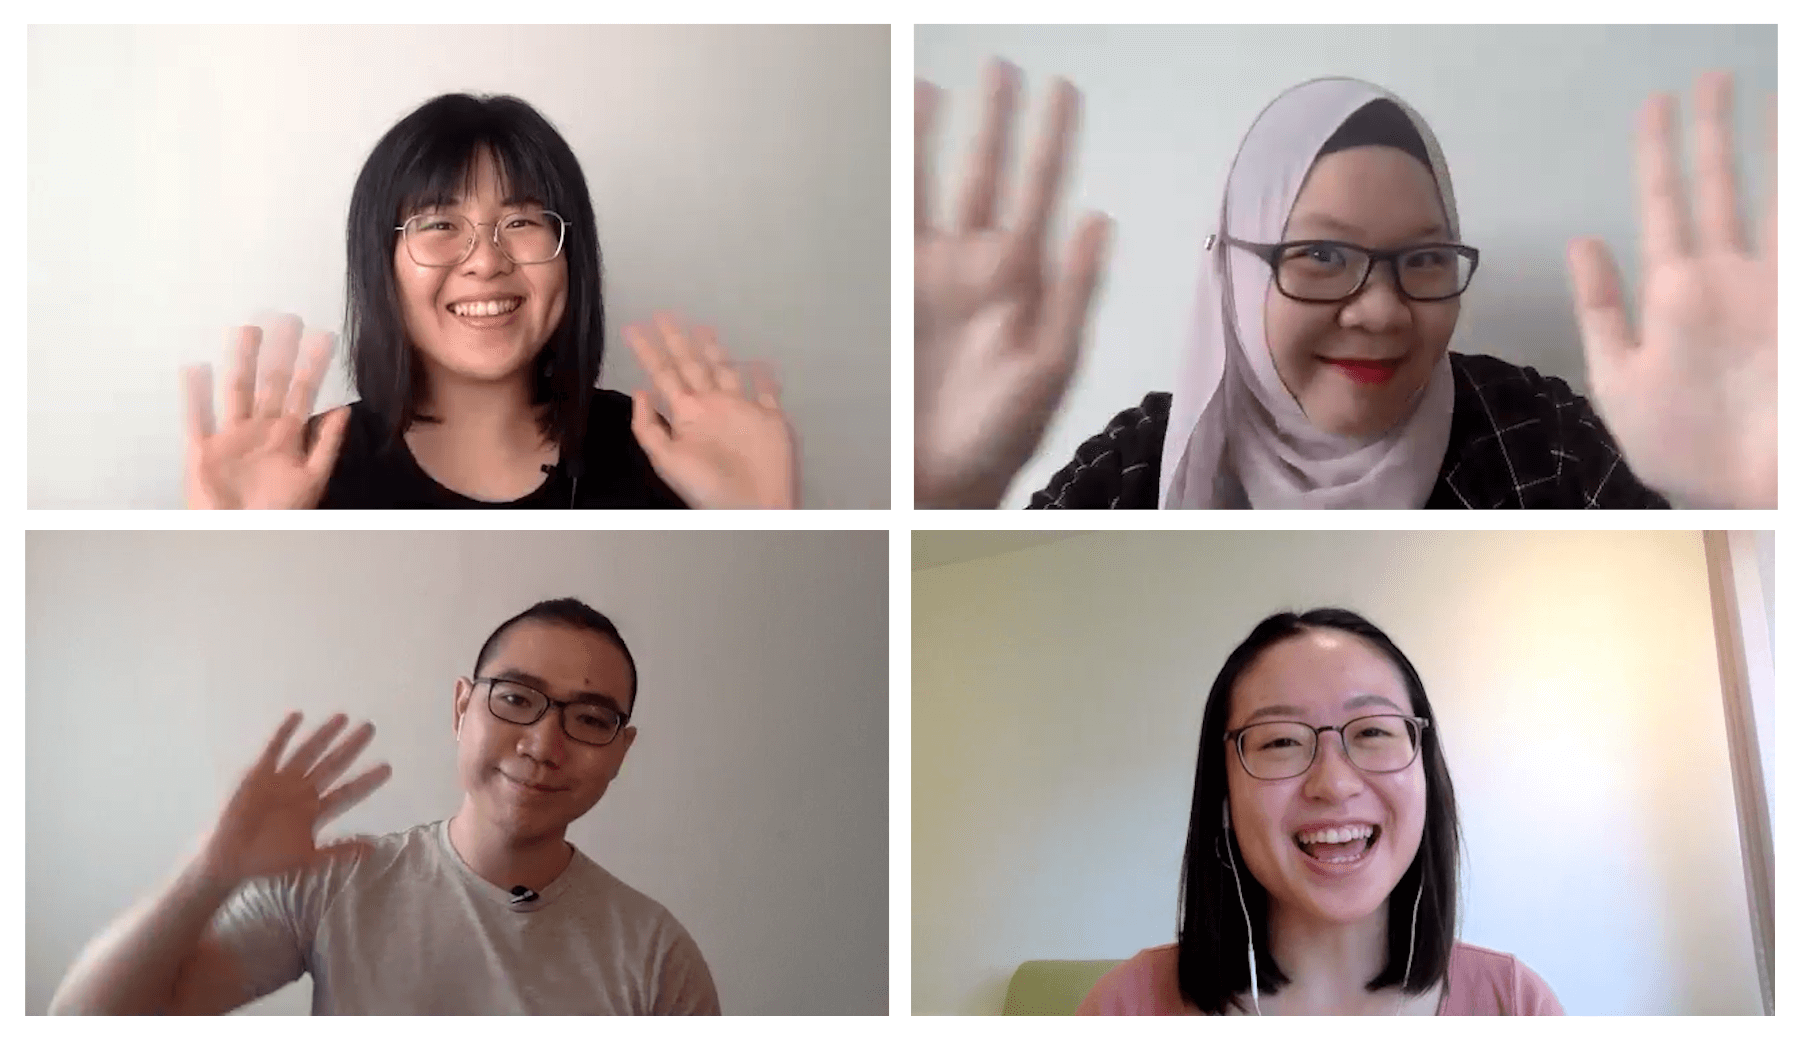 A photo of the Tribeless Team, from top left to bottom right, Gwen Yi, Sim, Shawn and Gwen Lyne.